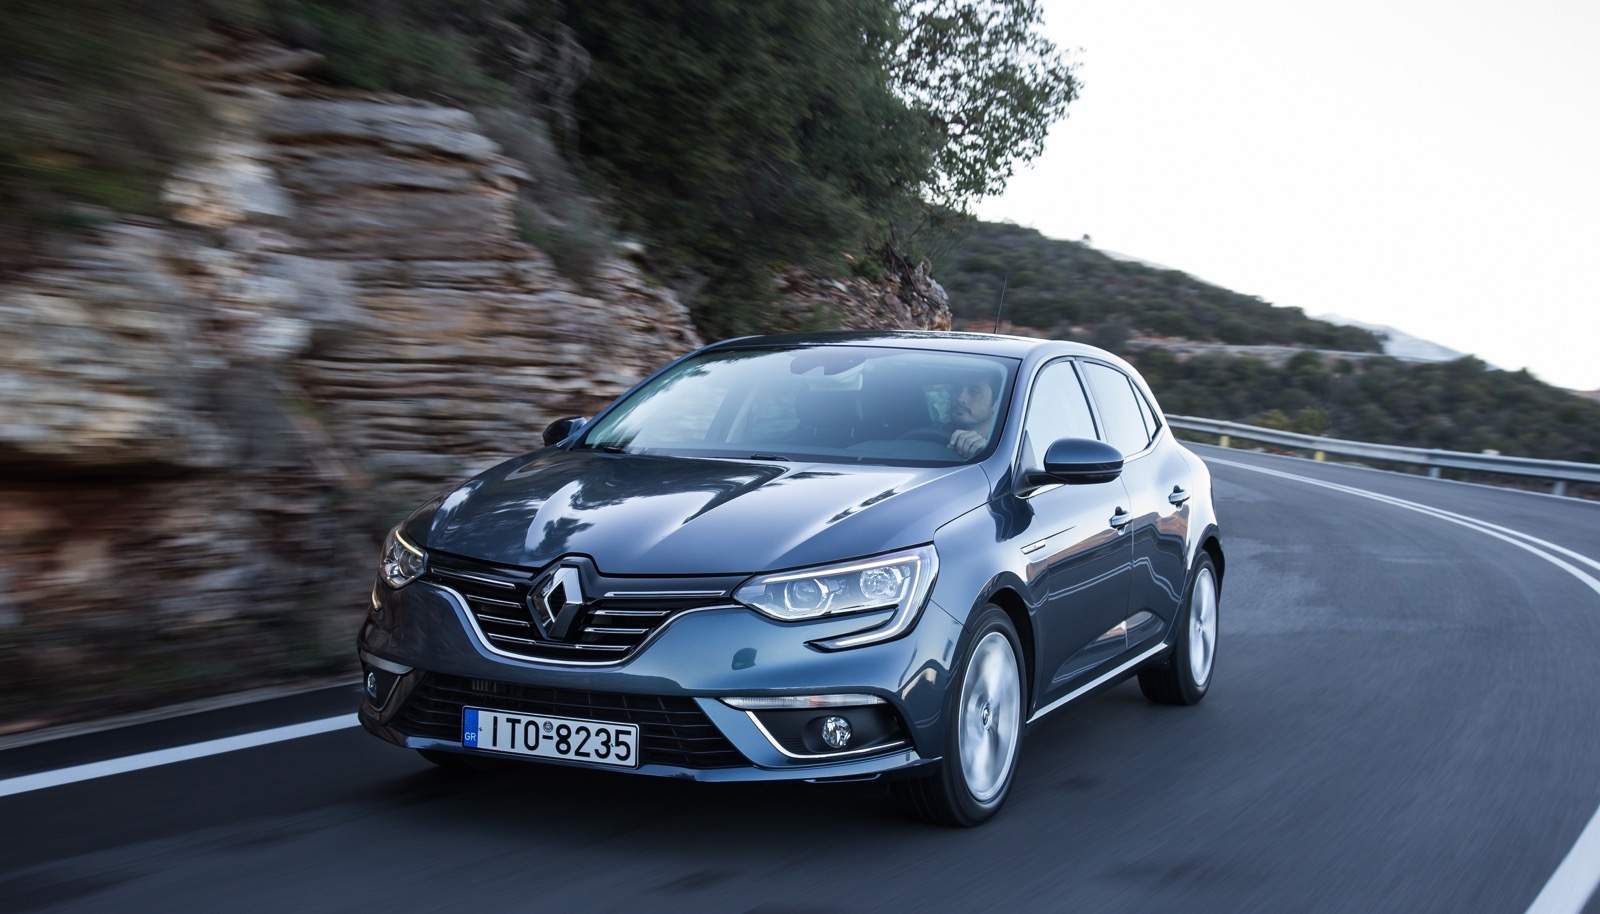 First_Drive_Renault_Megane_80